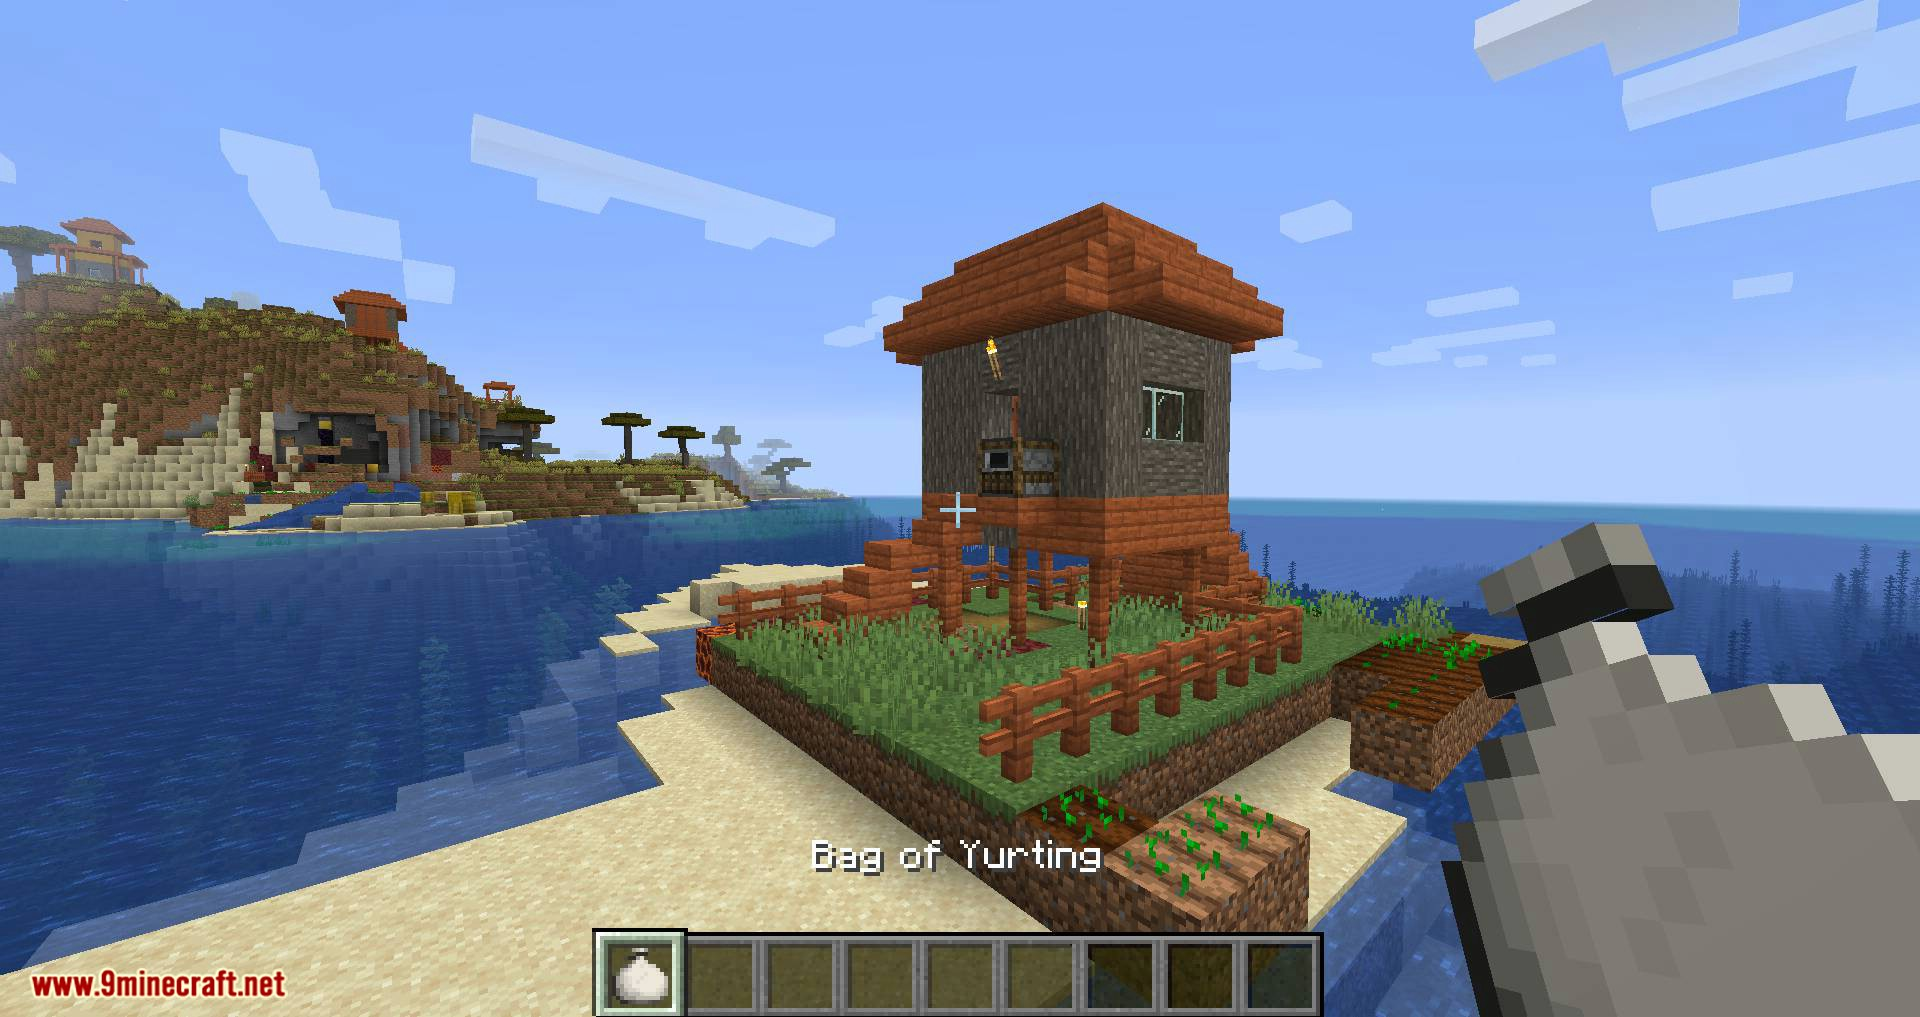 Bag of Yurting mod for minecraft 13